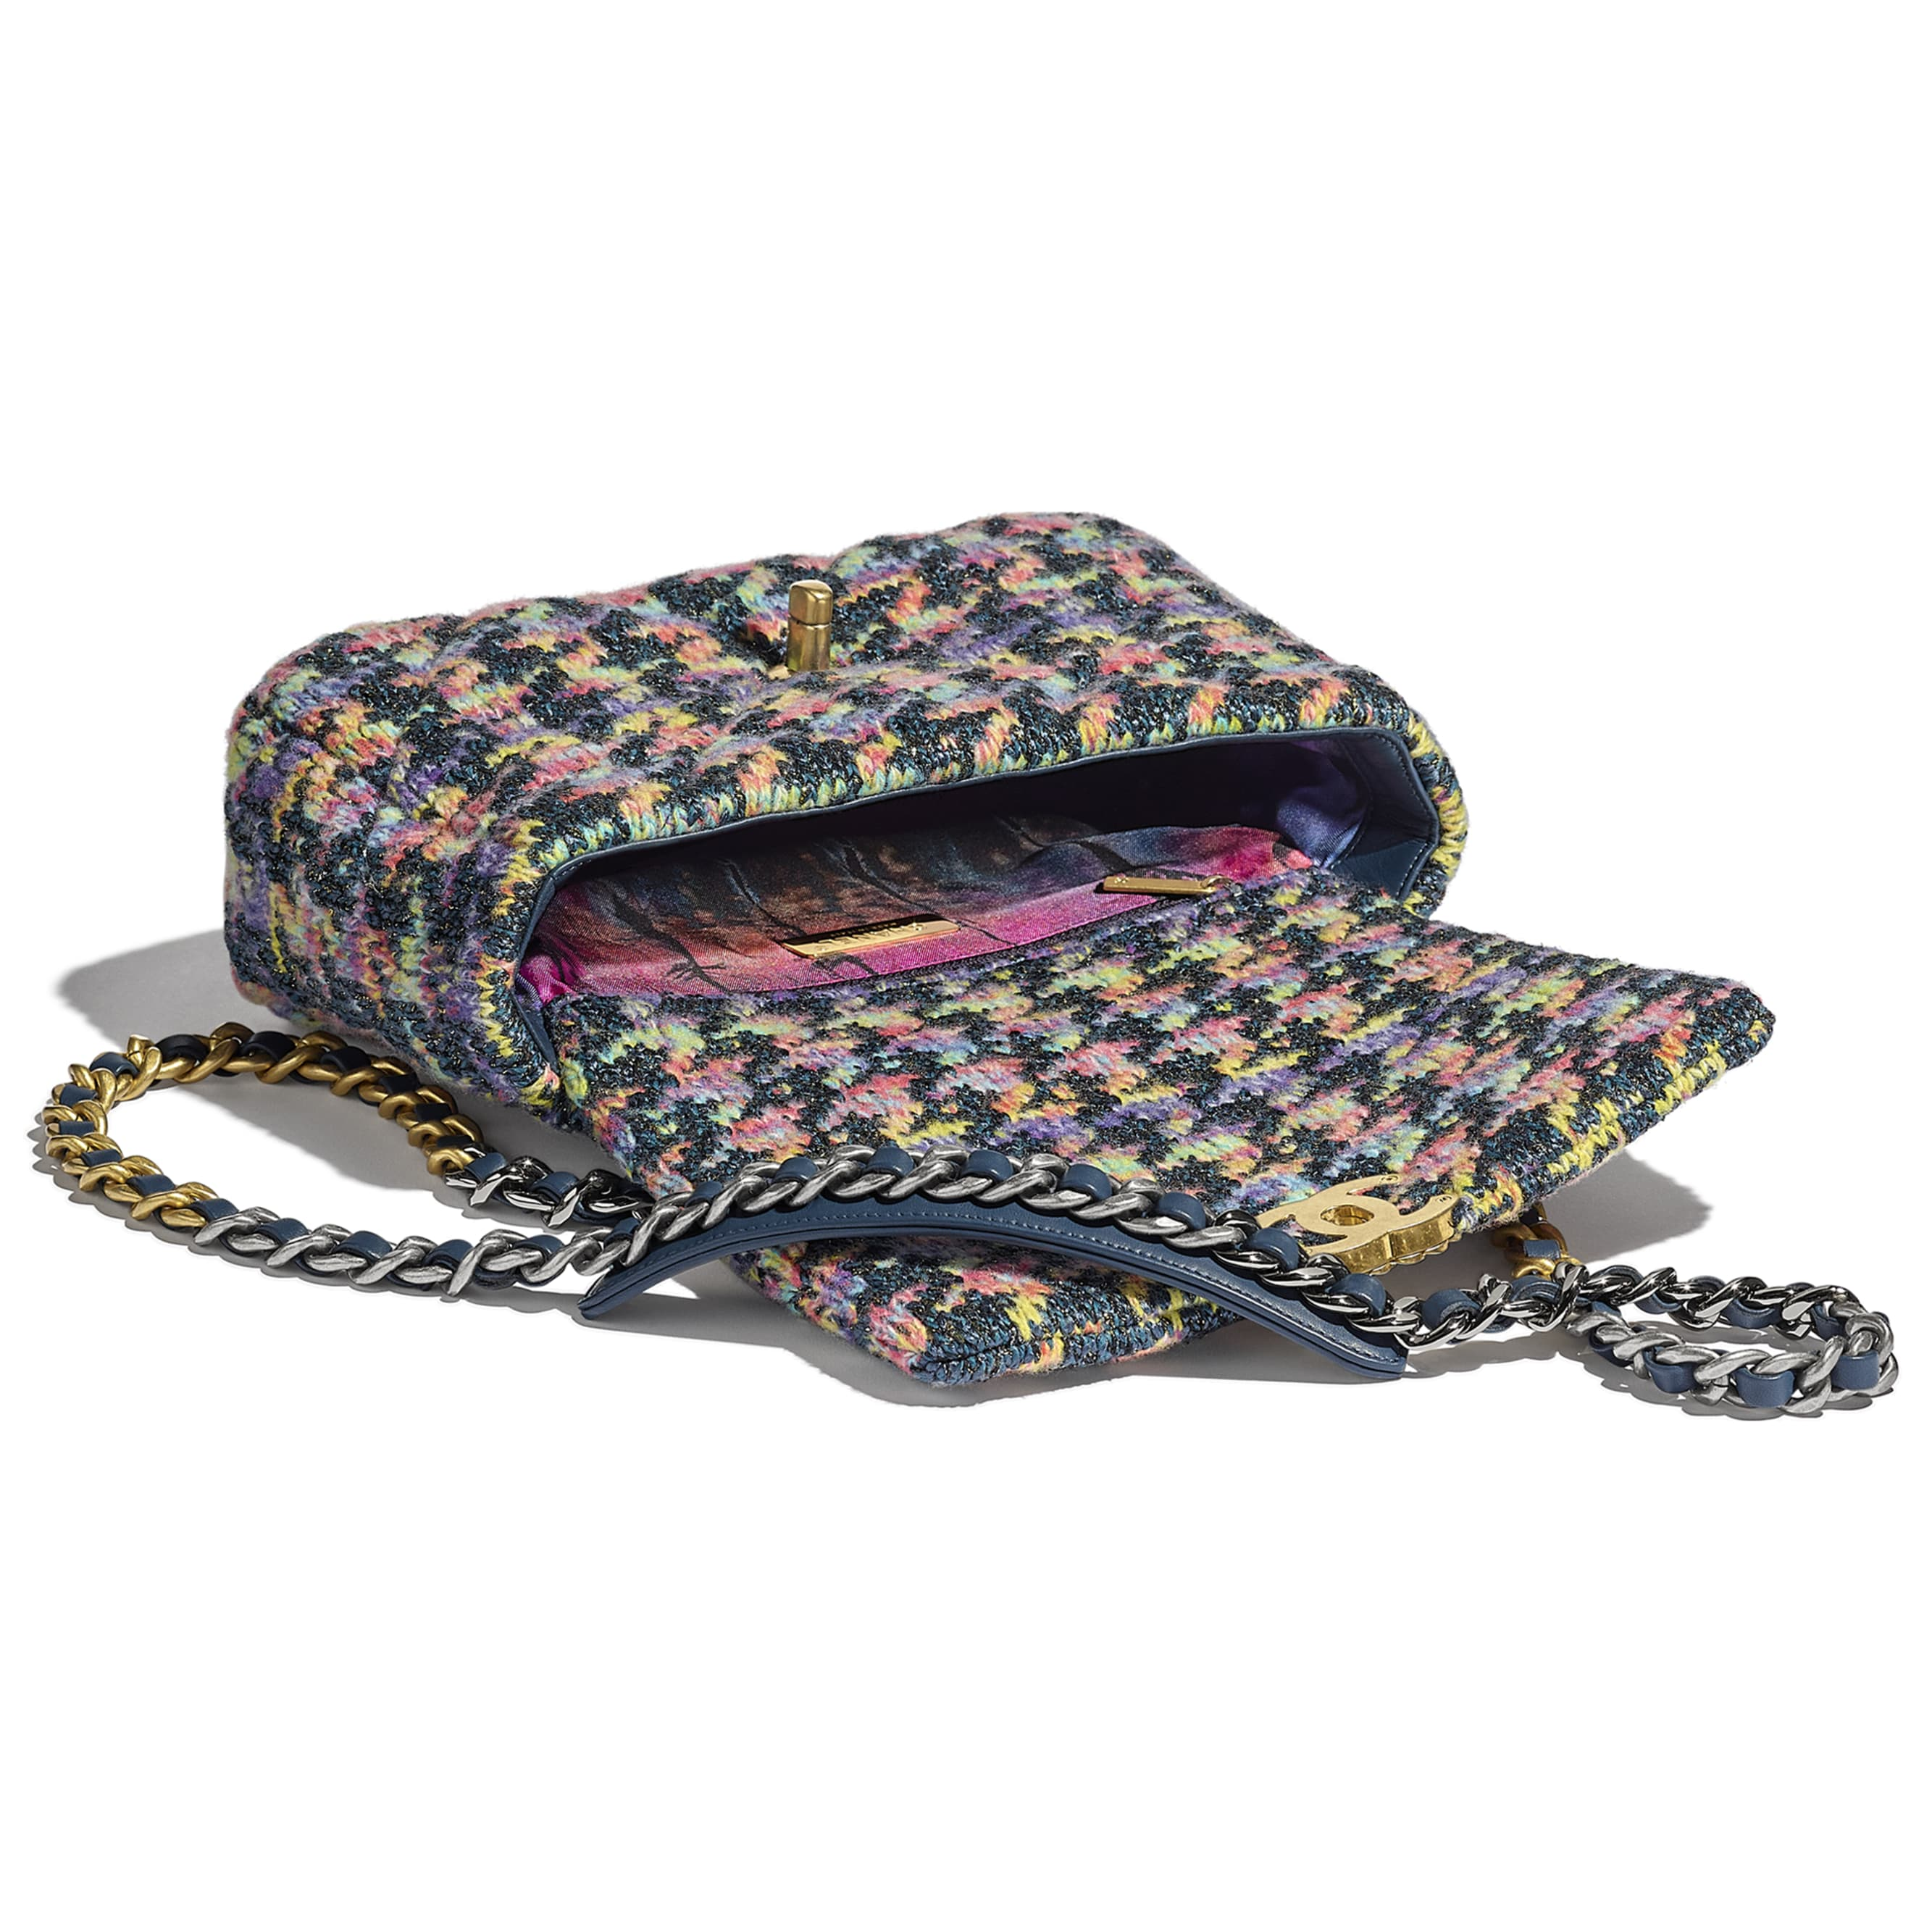 CHANEL 19 Flap Bag - Multicolour - Knit, Gold-Tone, Silver-Tone & Ruthenium-Finish Metal - CHANEL - Other view - see standard sized version